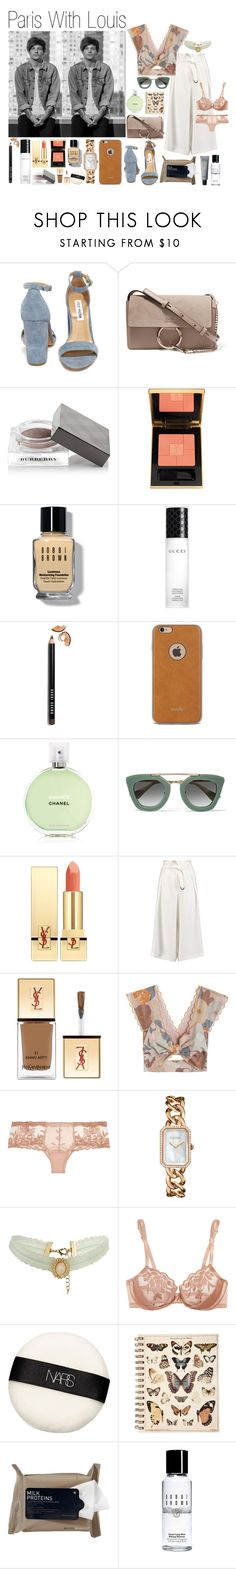 """""""Paris With Louis (Requested)"""" by one-direction-outfitsxxx ❤ liked on Polyvore featuring Steve Madden, Chloé, Burberry, Yves Saint Laurent, Bobbi Brown Cosmetics, Gucci, Moshi, Chanel, Prada and Amanda Wakeley"""